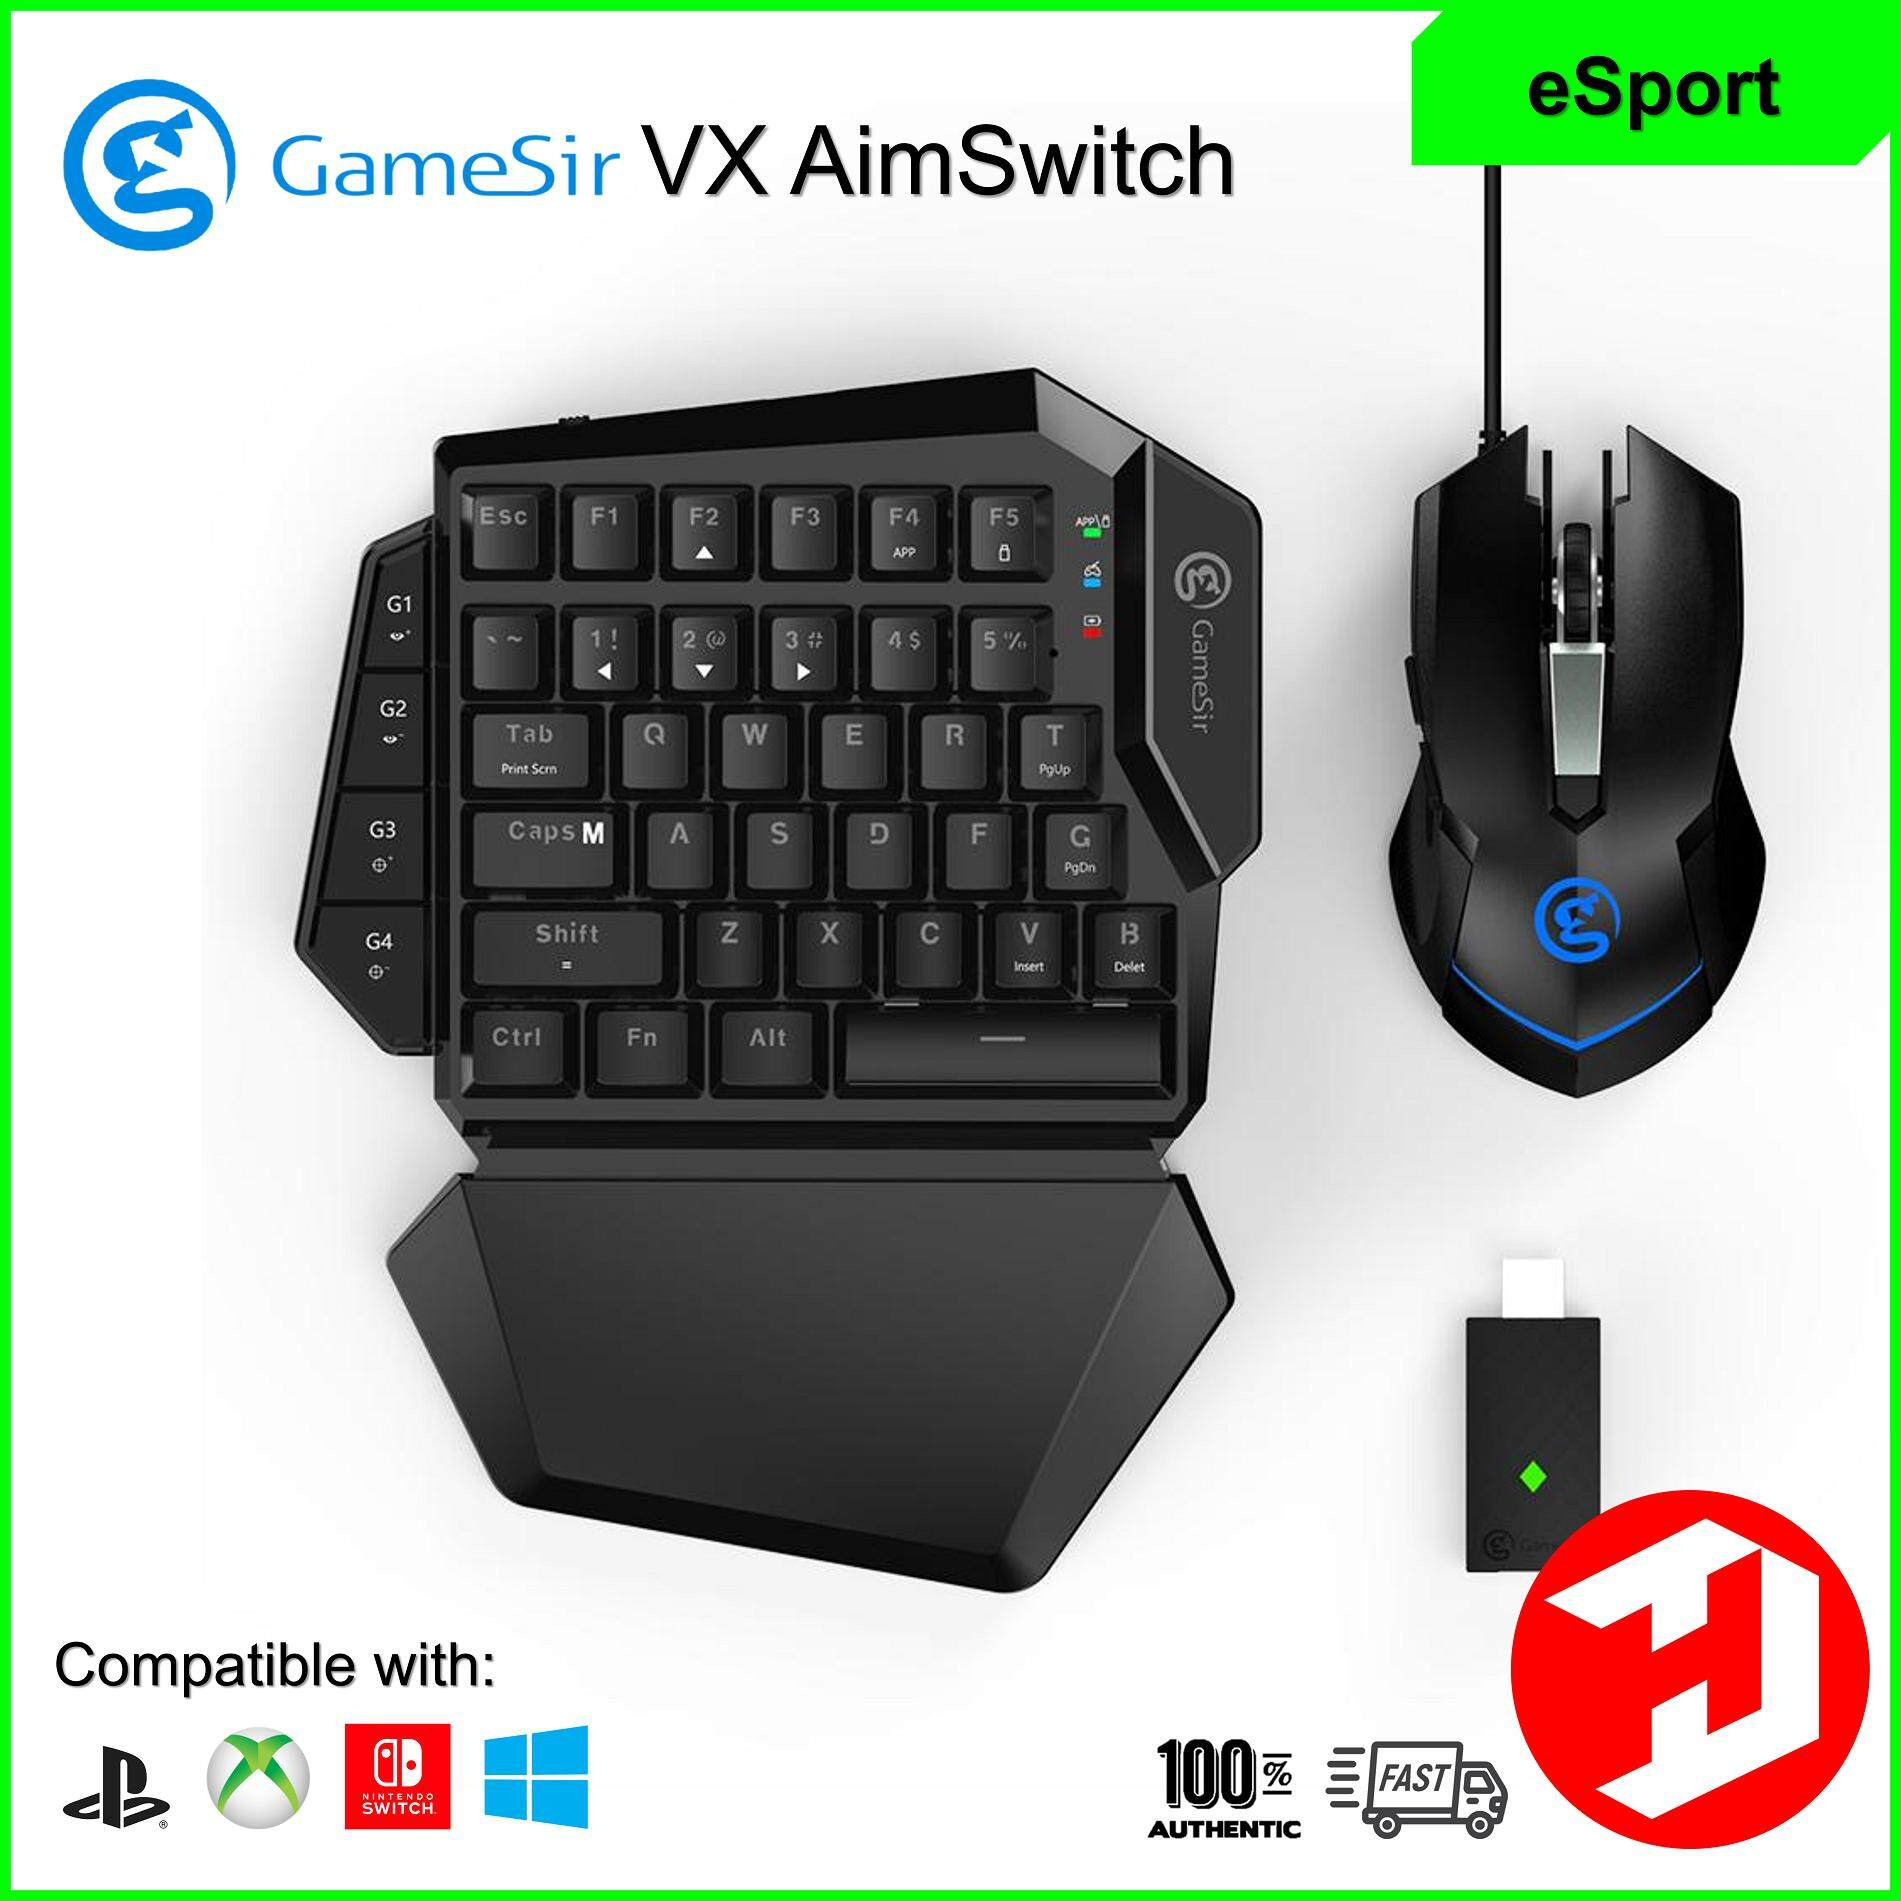 [FAST SHIPPING] GameSir VX AimSwitch E-sports Gaming Input Adapter Combo  for PC & Consoles (SUPPORT PC / PS3 / PS4 / XBOX ONE / NINTENDO SWITCH)